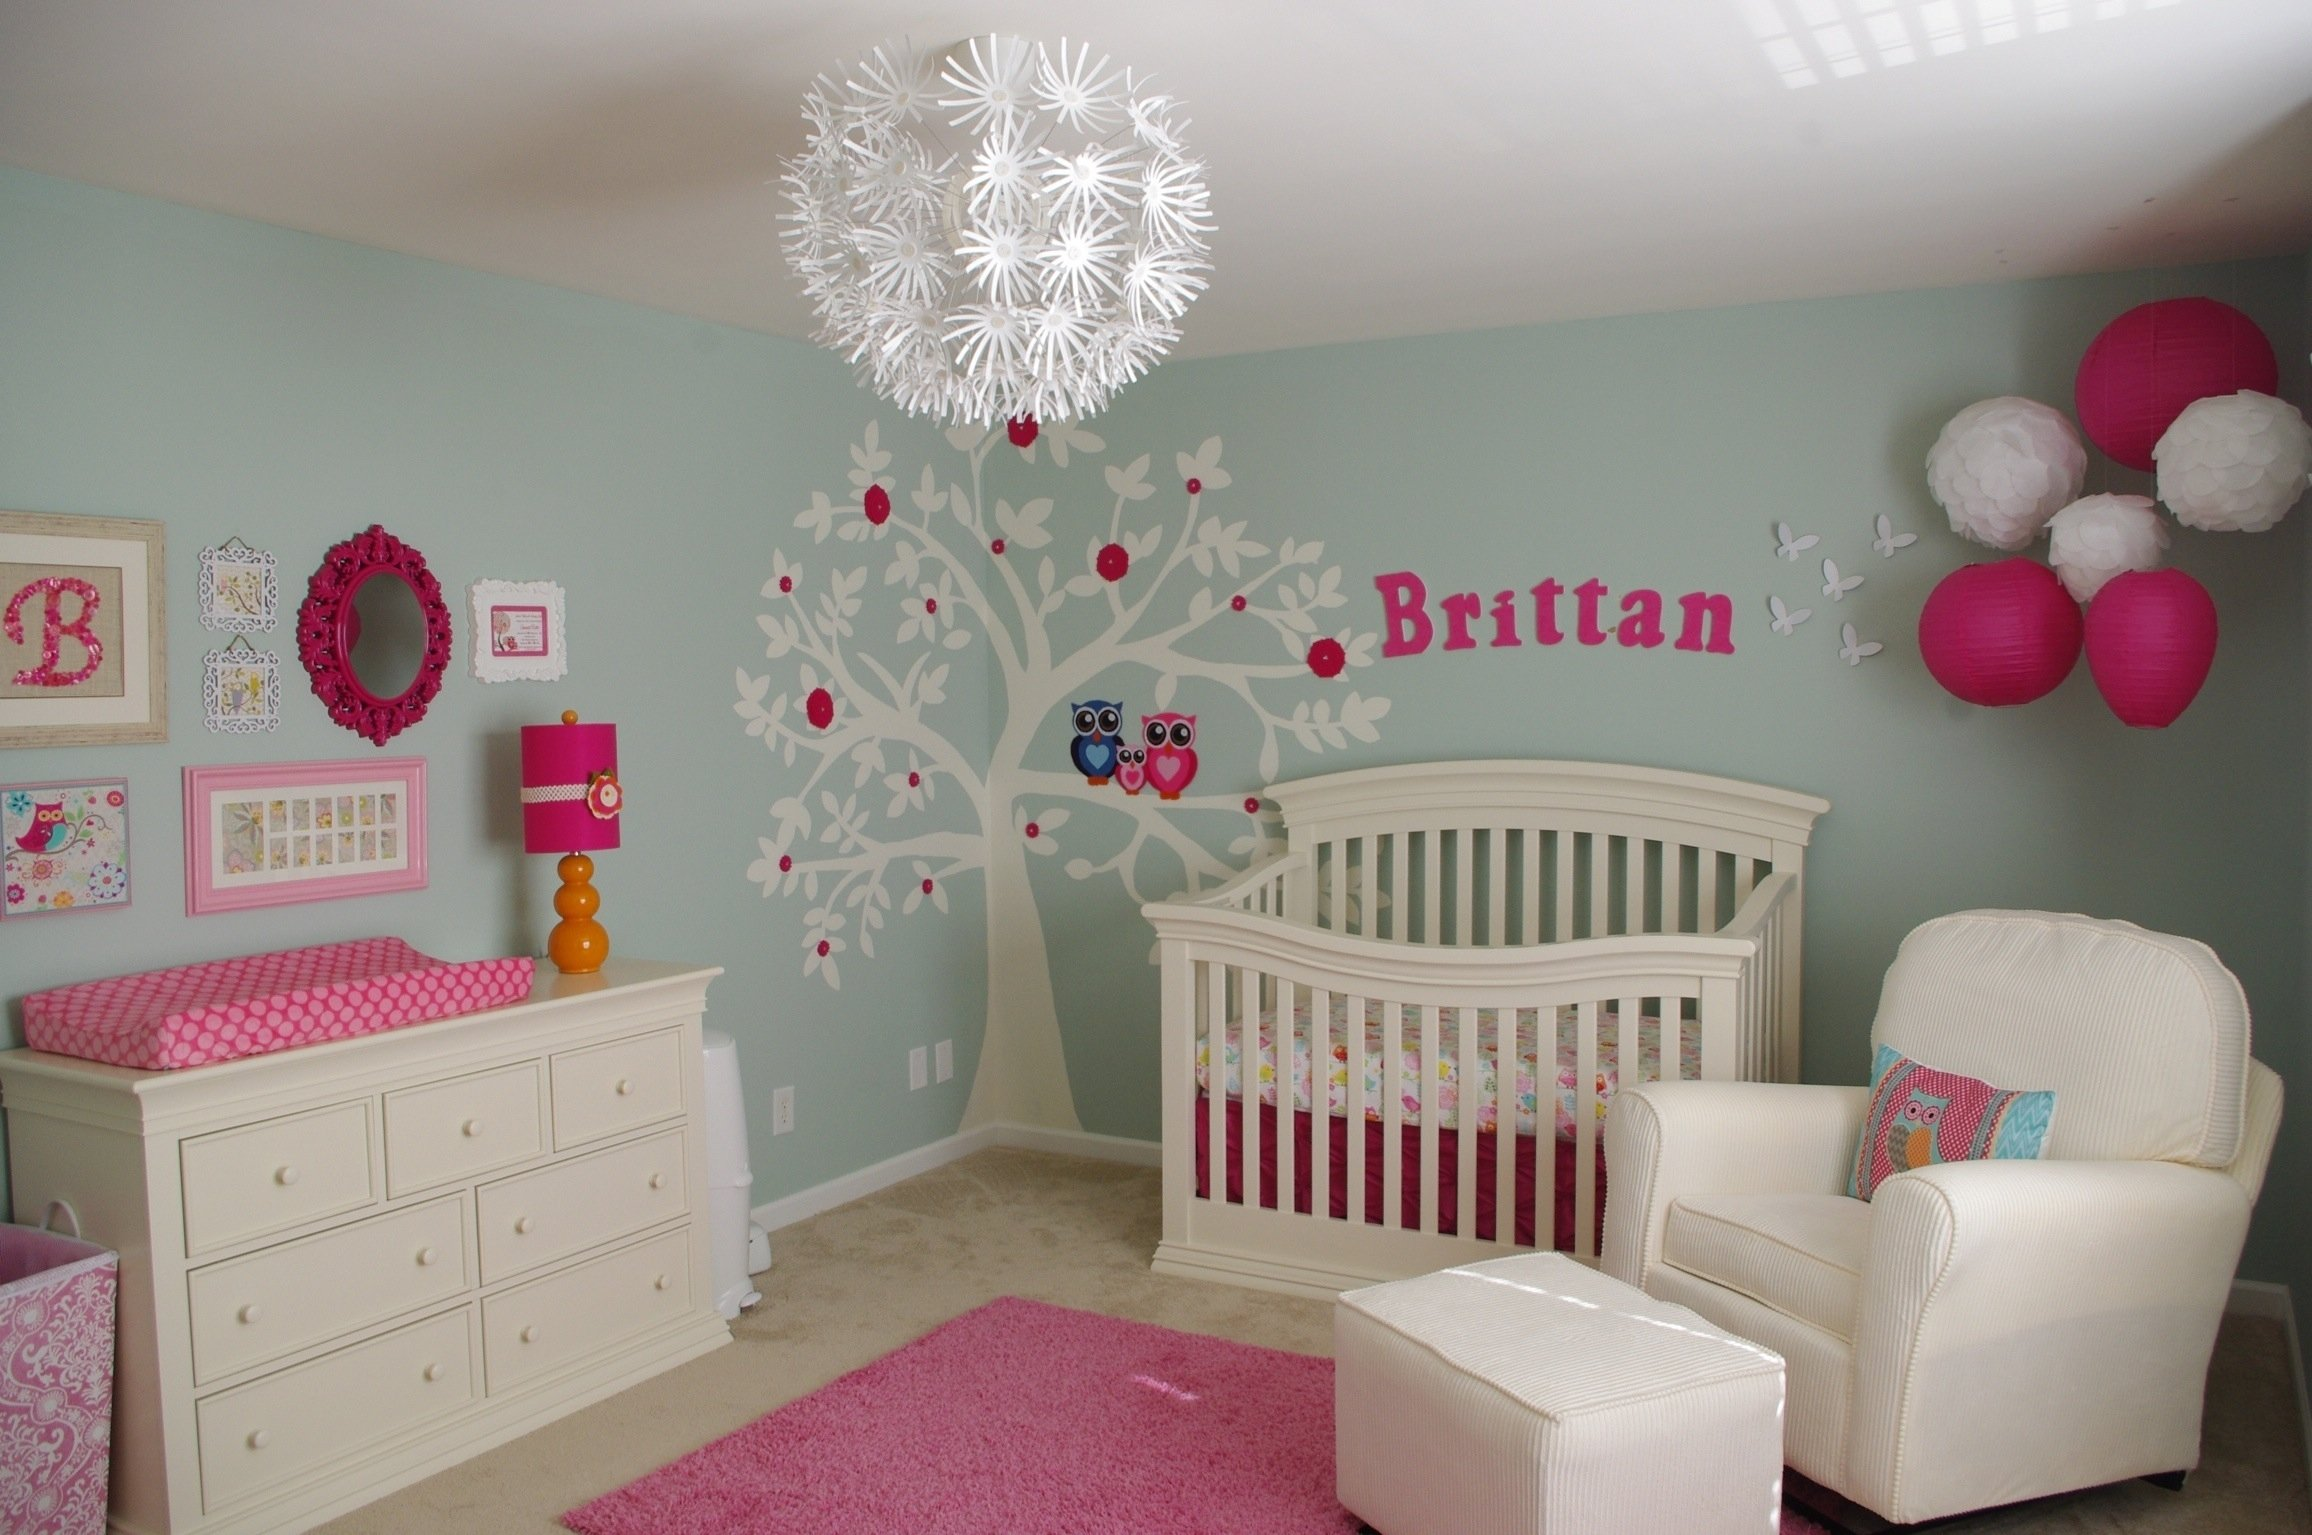 10 Most Recommended Ideas For Baby Girl Room home decor baby nursery decorate girl room ideas cute pinterest 3